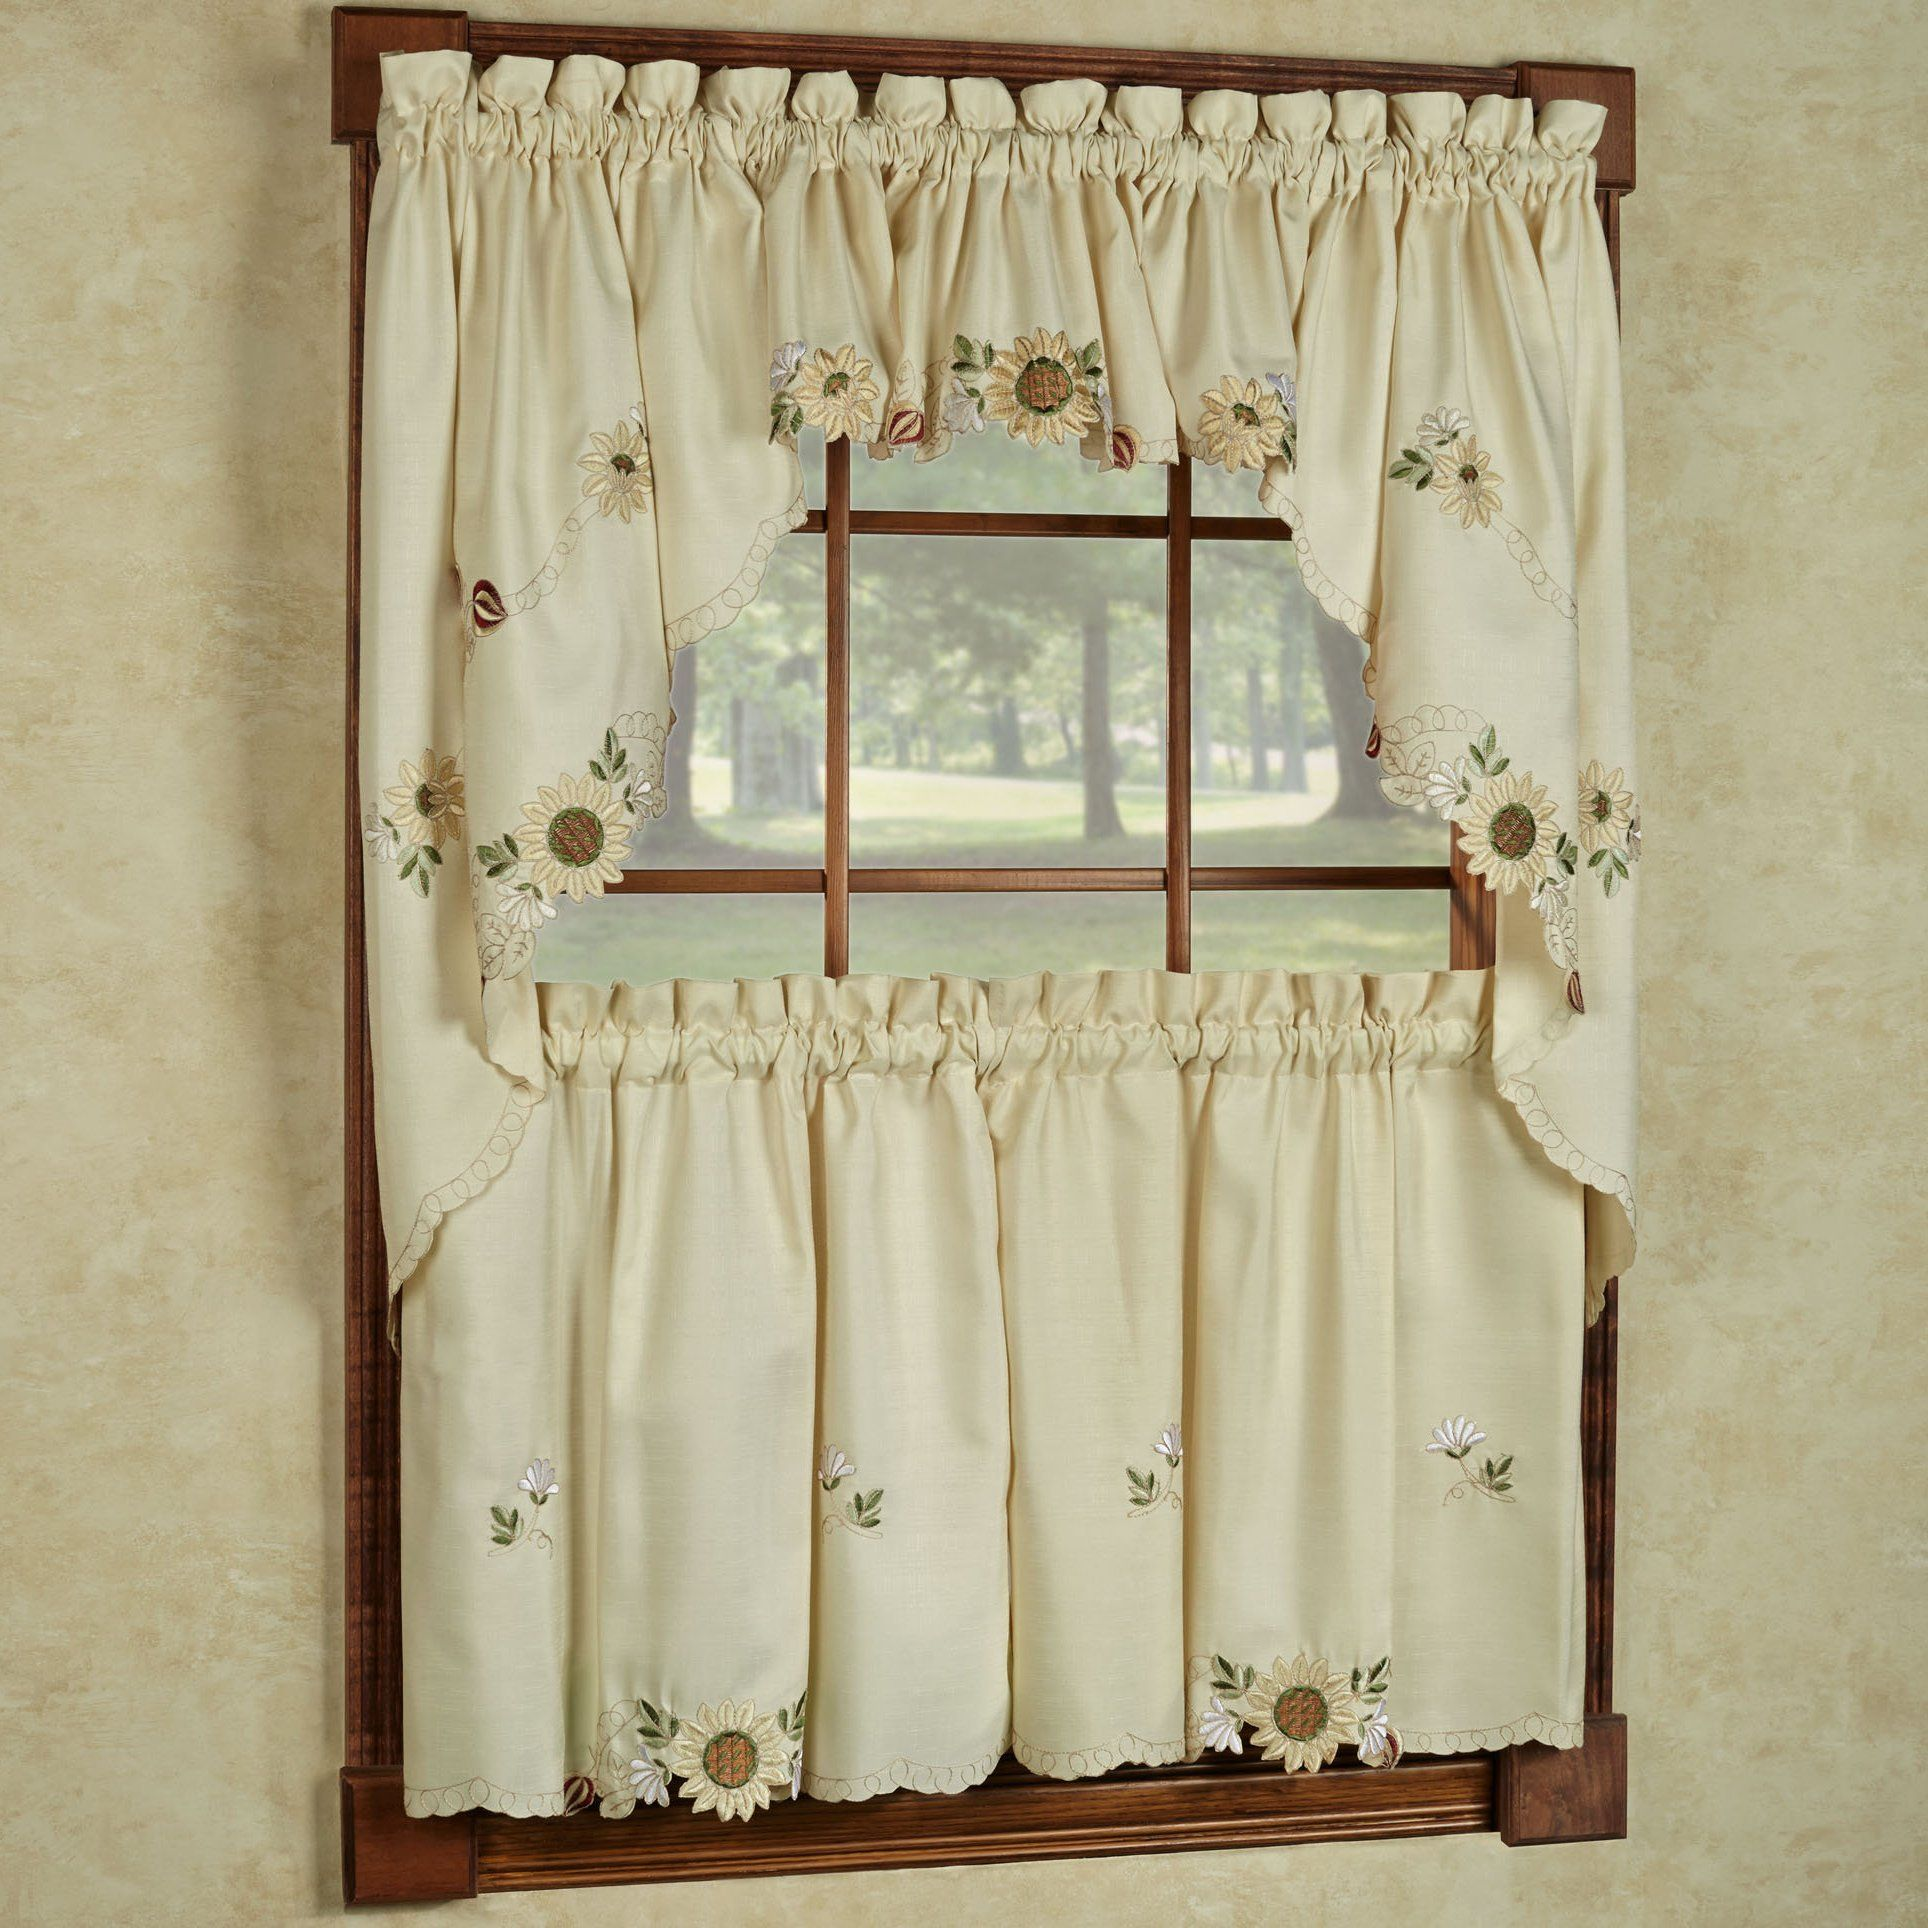 Sweet Home Collection 5 Pc Kitchen Curtain Set Swag Pair Valance